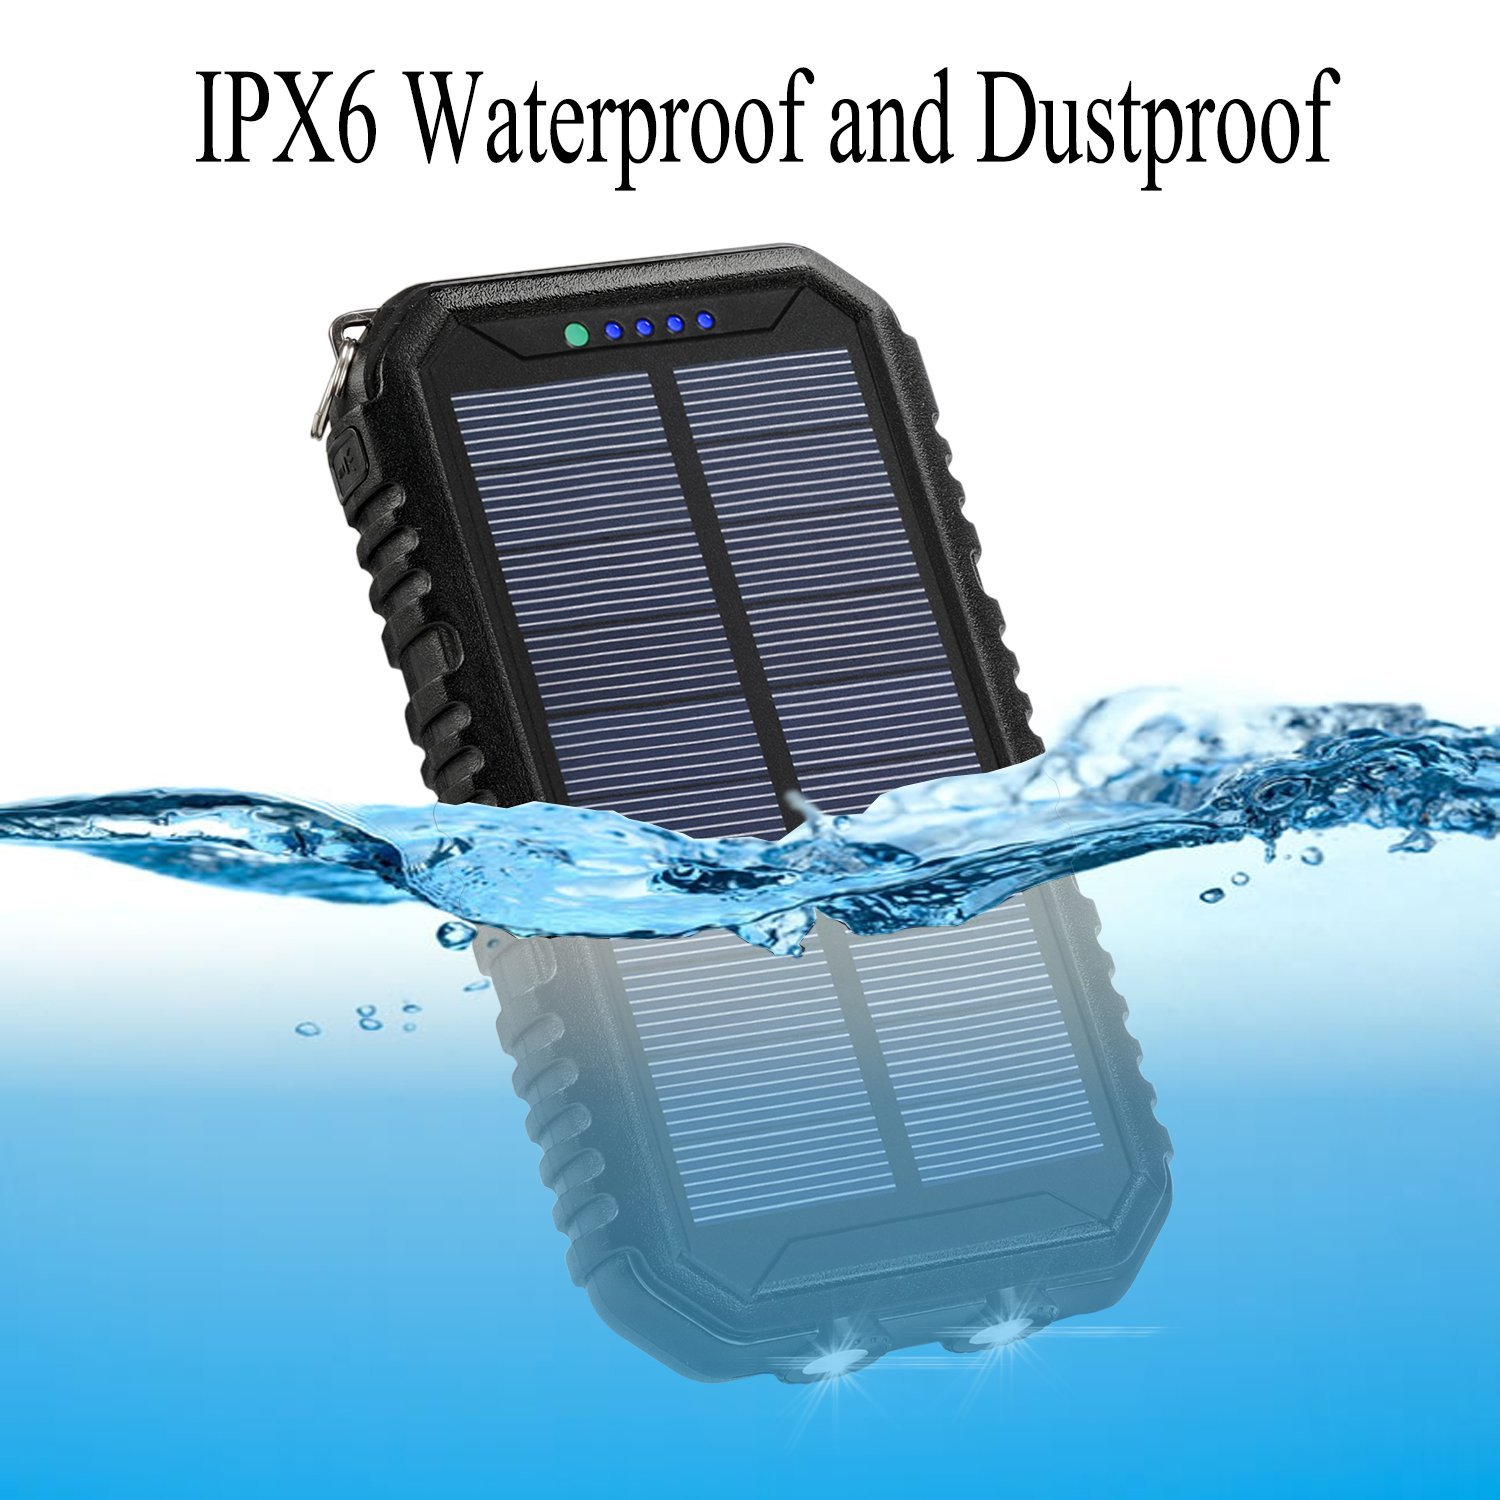 Solar Charger 12000mAh WBPINE Portable Solar Power Bank Shockproof/Dustproof/Waterproof Dual USB 2 LED Flashlights Cellphone More by WBPINE (Image #6)